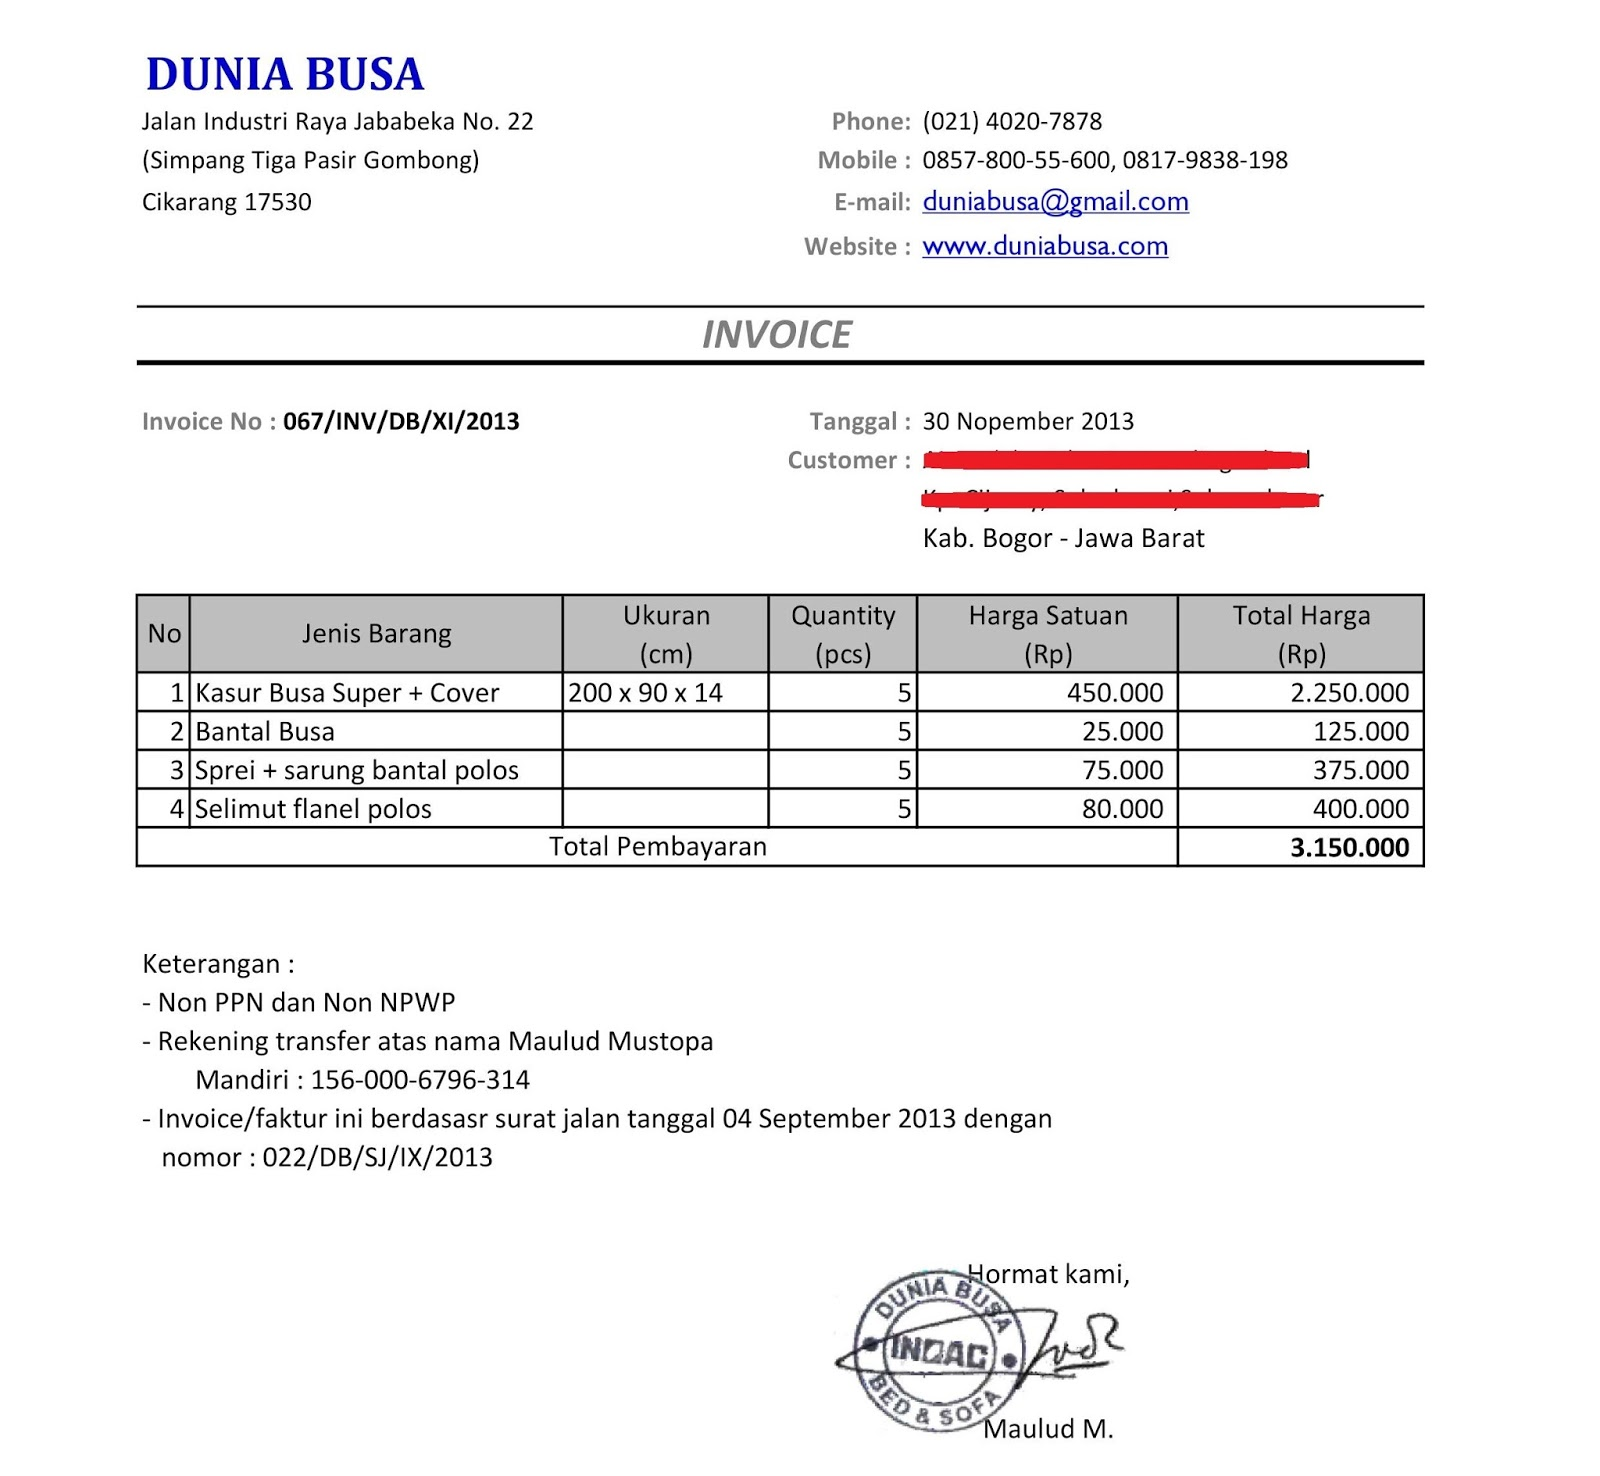 Usdgus  Nice Free Invoice Online  Create Invoice Online  Invoice Template  With Luxury Contoh Format Invoice Atau Surat Tagihan  Brankas Arsip  Free Invoice Online With Attractive Receipt Confirmation Letter Also Boots Return Policy Without Receipt In Addition Bearville Receipt Code And Meaning Of Global Depository Receipts As Well As Receipts And Payments Account Additionally Mac Receipt Scanner From Sklepco With Usdgus  Luxury Free Invoice Online  Create Invoice Online  Invoice Template  With Attractive Contoh Format Invoice Atau Surat Tagihan  Brankas Arsip  Free Invoice Online And Nice Receipt Confirmation Letter Also Boots Return Policy Without Receipt In Addition Bearville Receipt Code From Sklepco